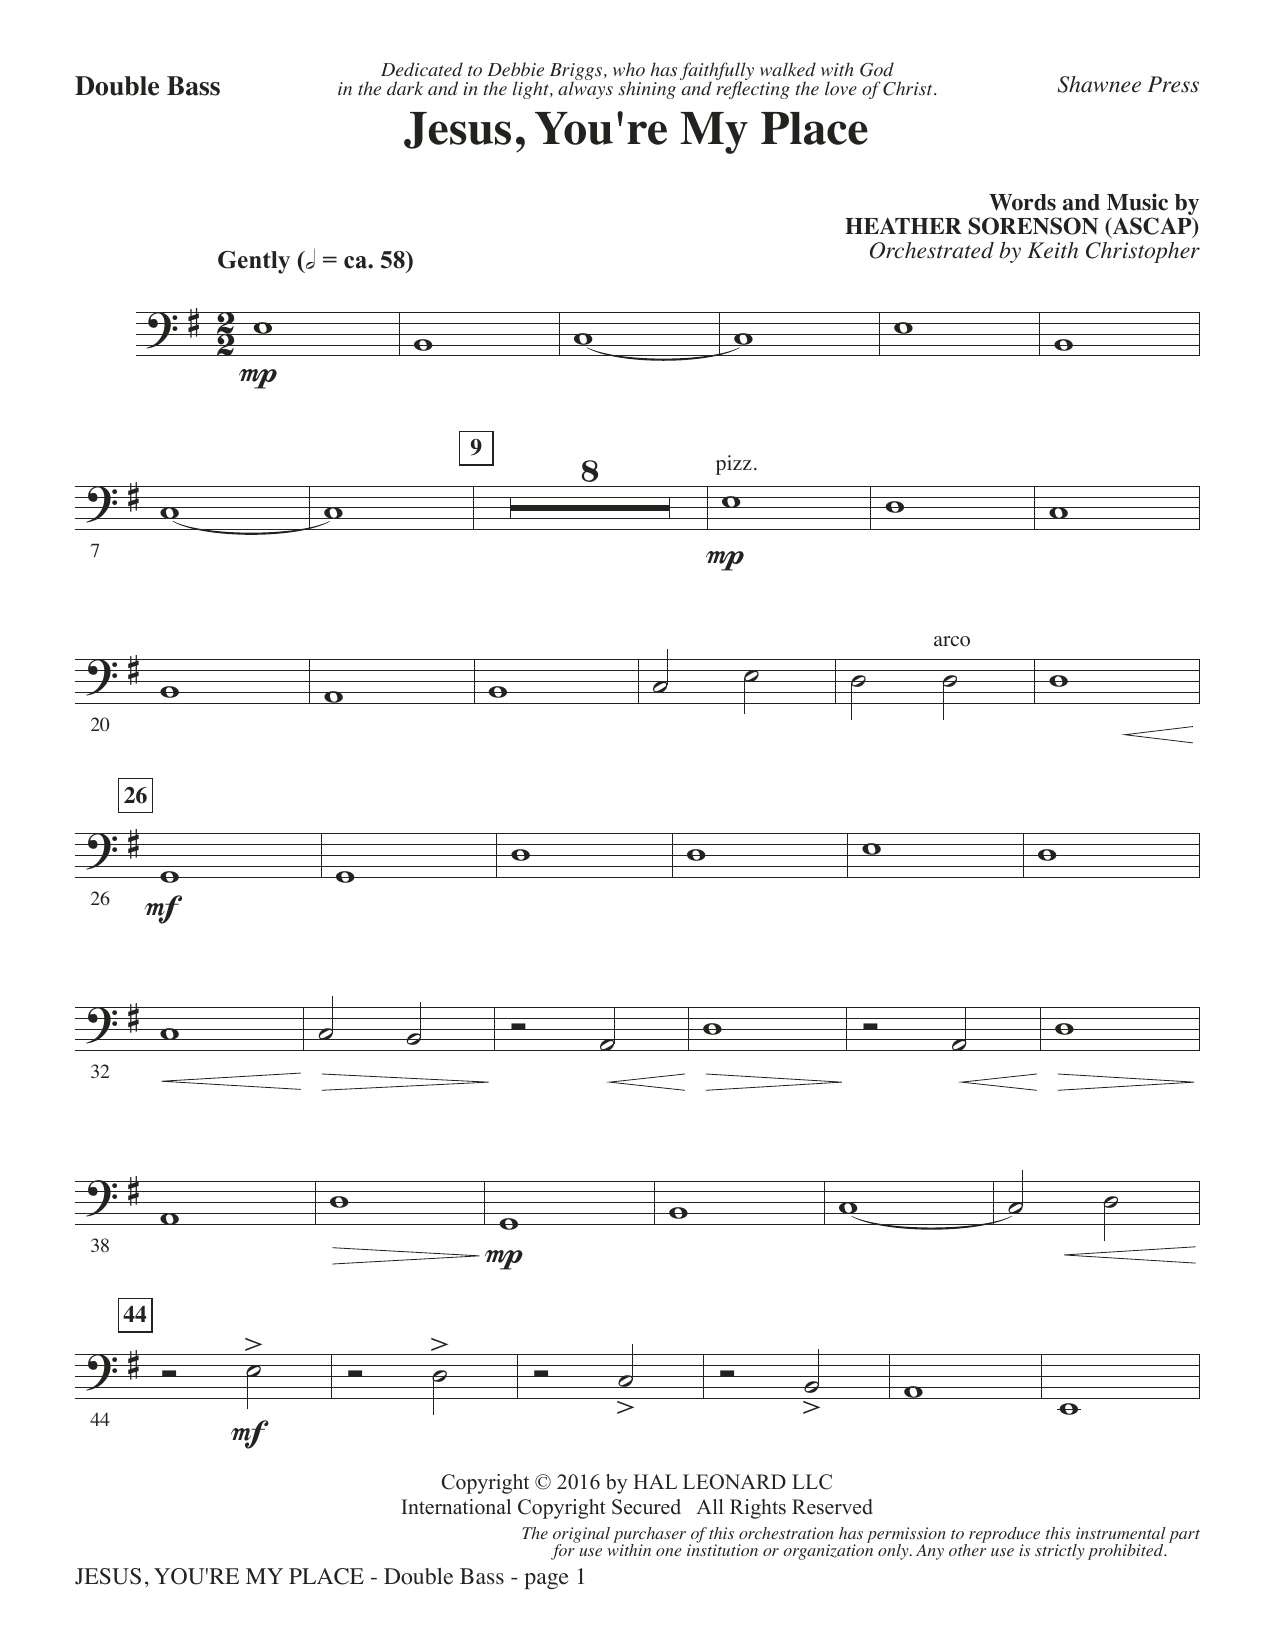 Jesus, You're My Place - Double Bass - Choral Music Download